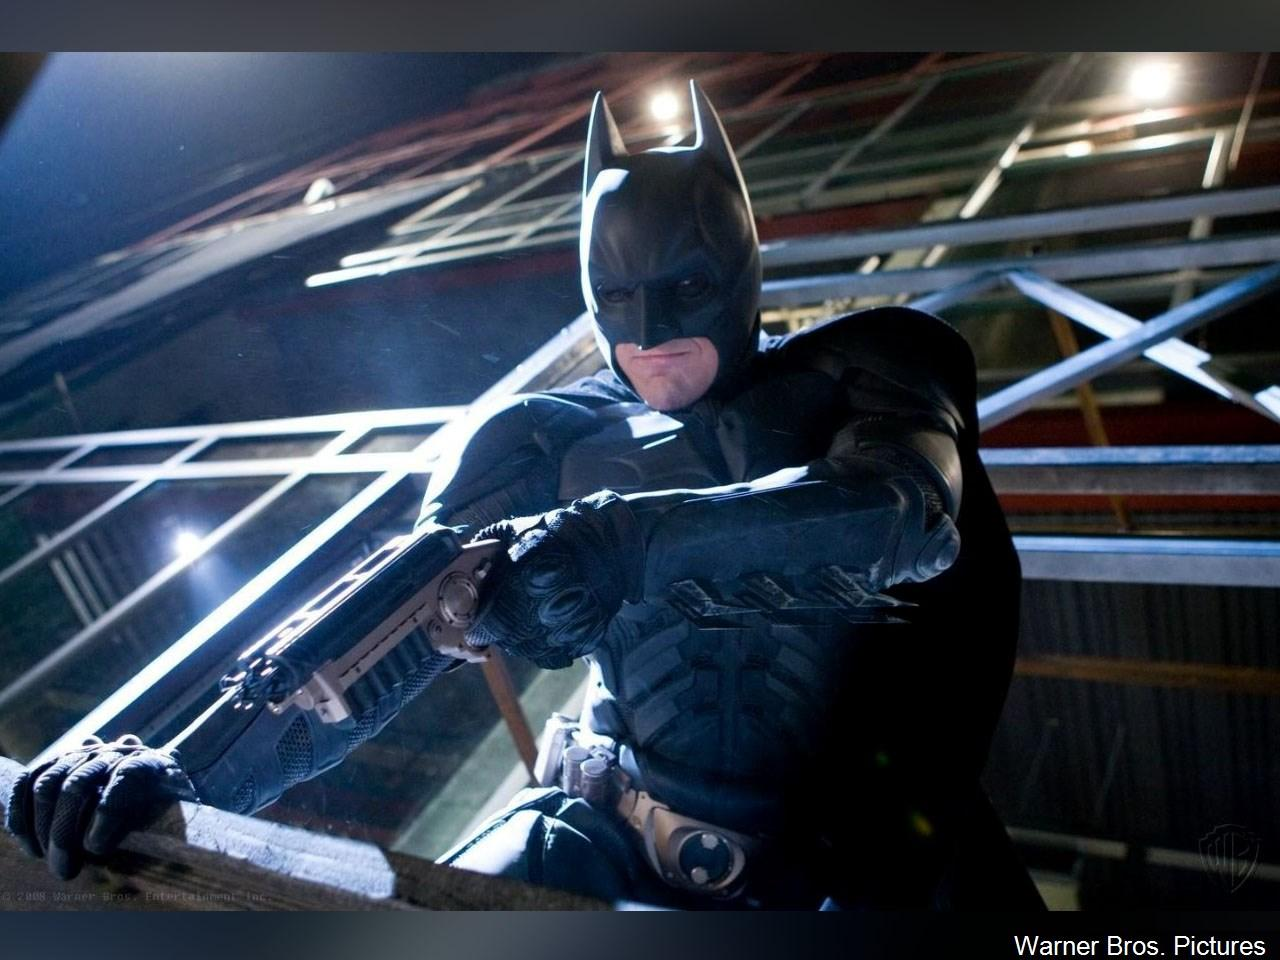 Christian Bale as Batman in 'The Dark Knight', 2008. (Photo: Warner Bros. Pictures via MGN Online)